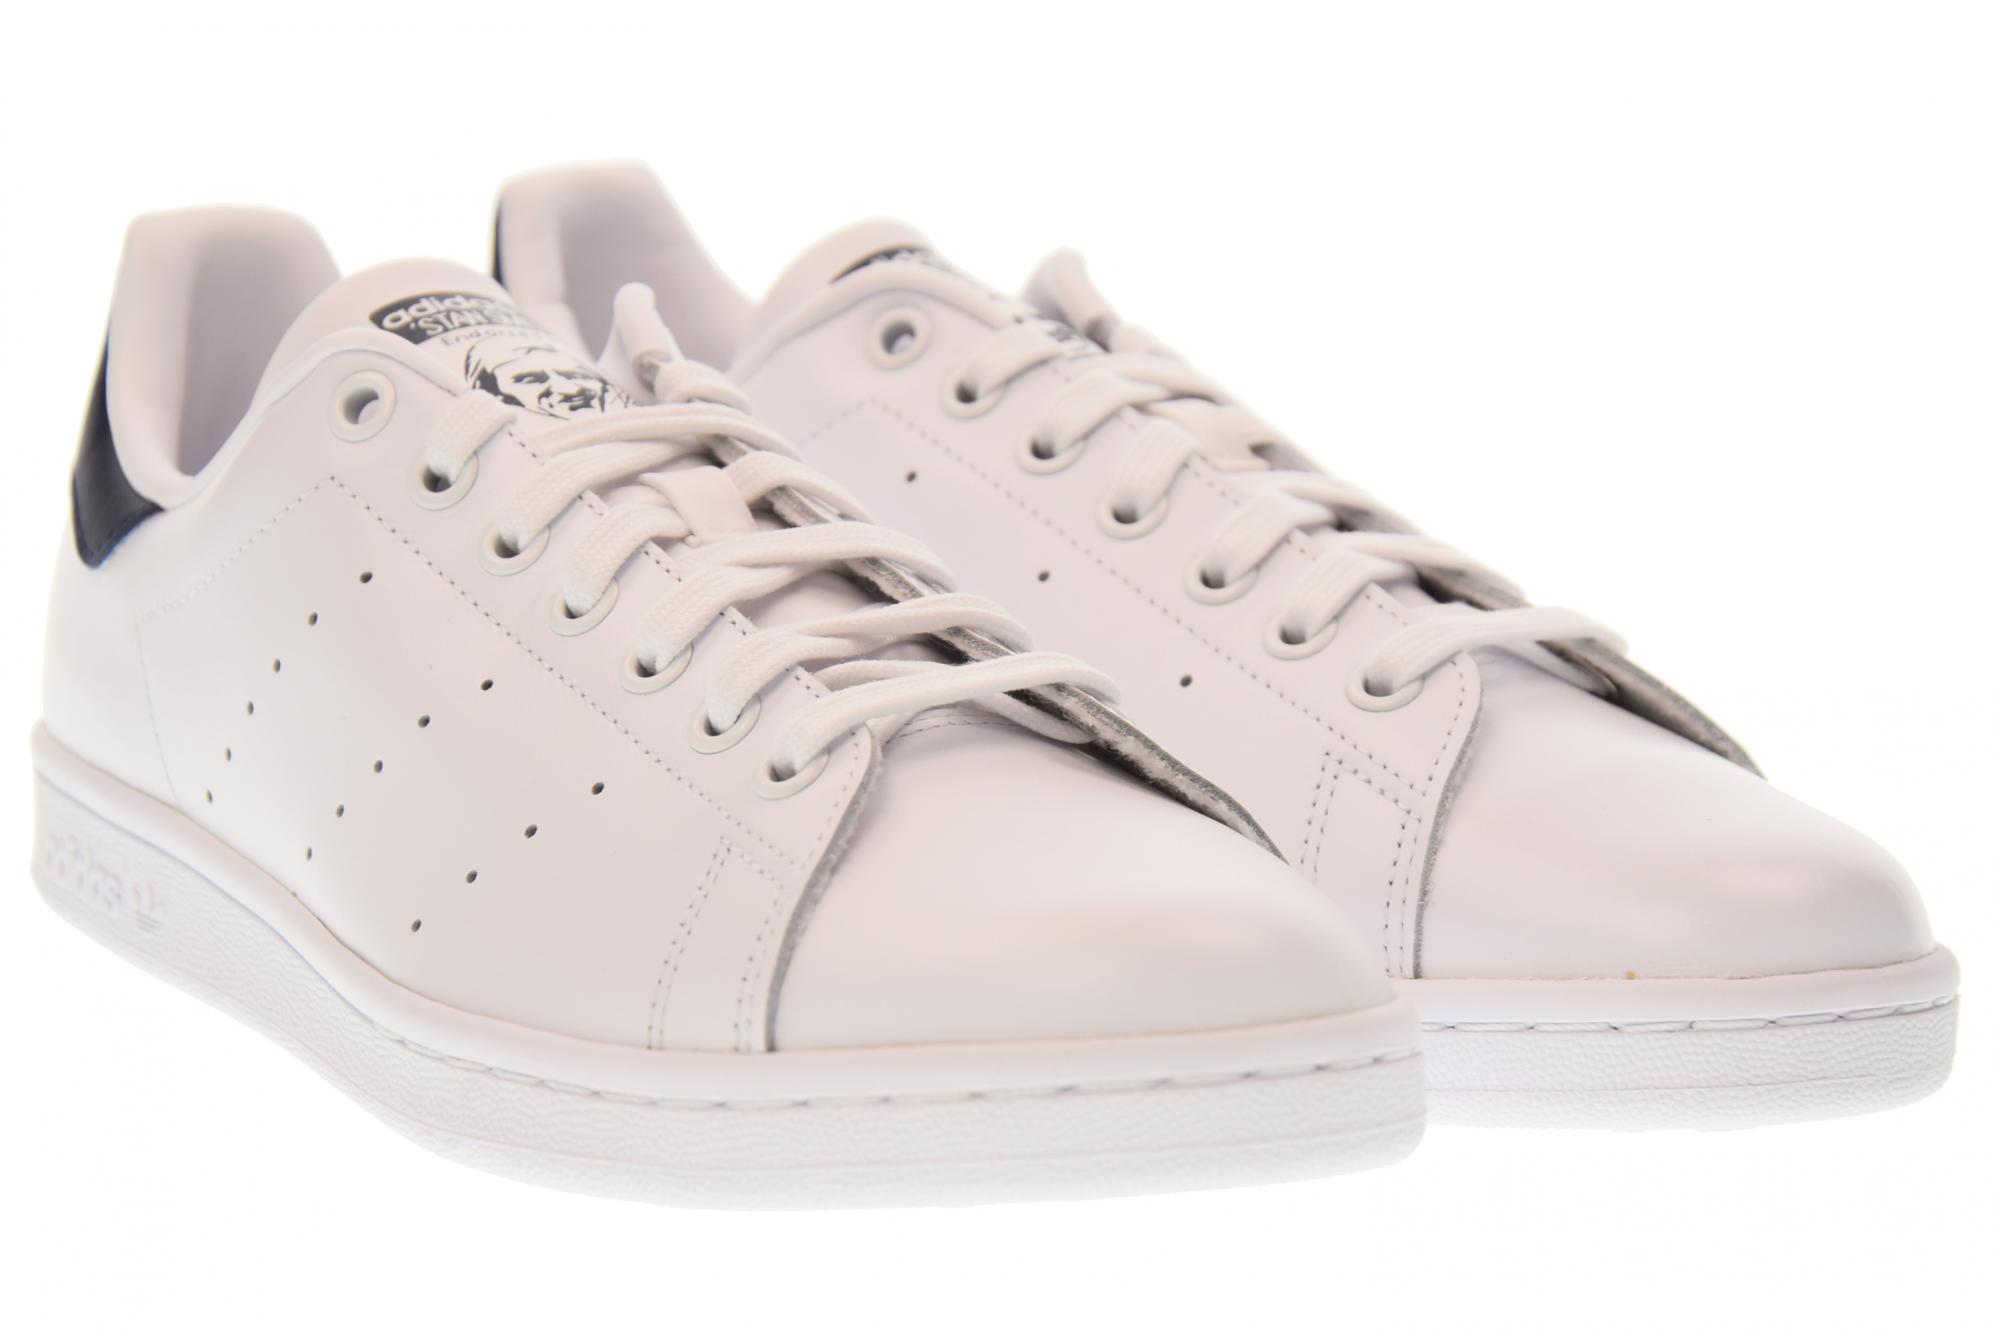 Adidas A18f chaussures unisexe baskets basses M20325 STAN SMITH